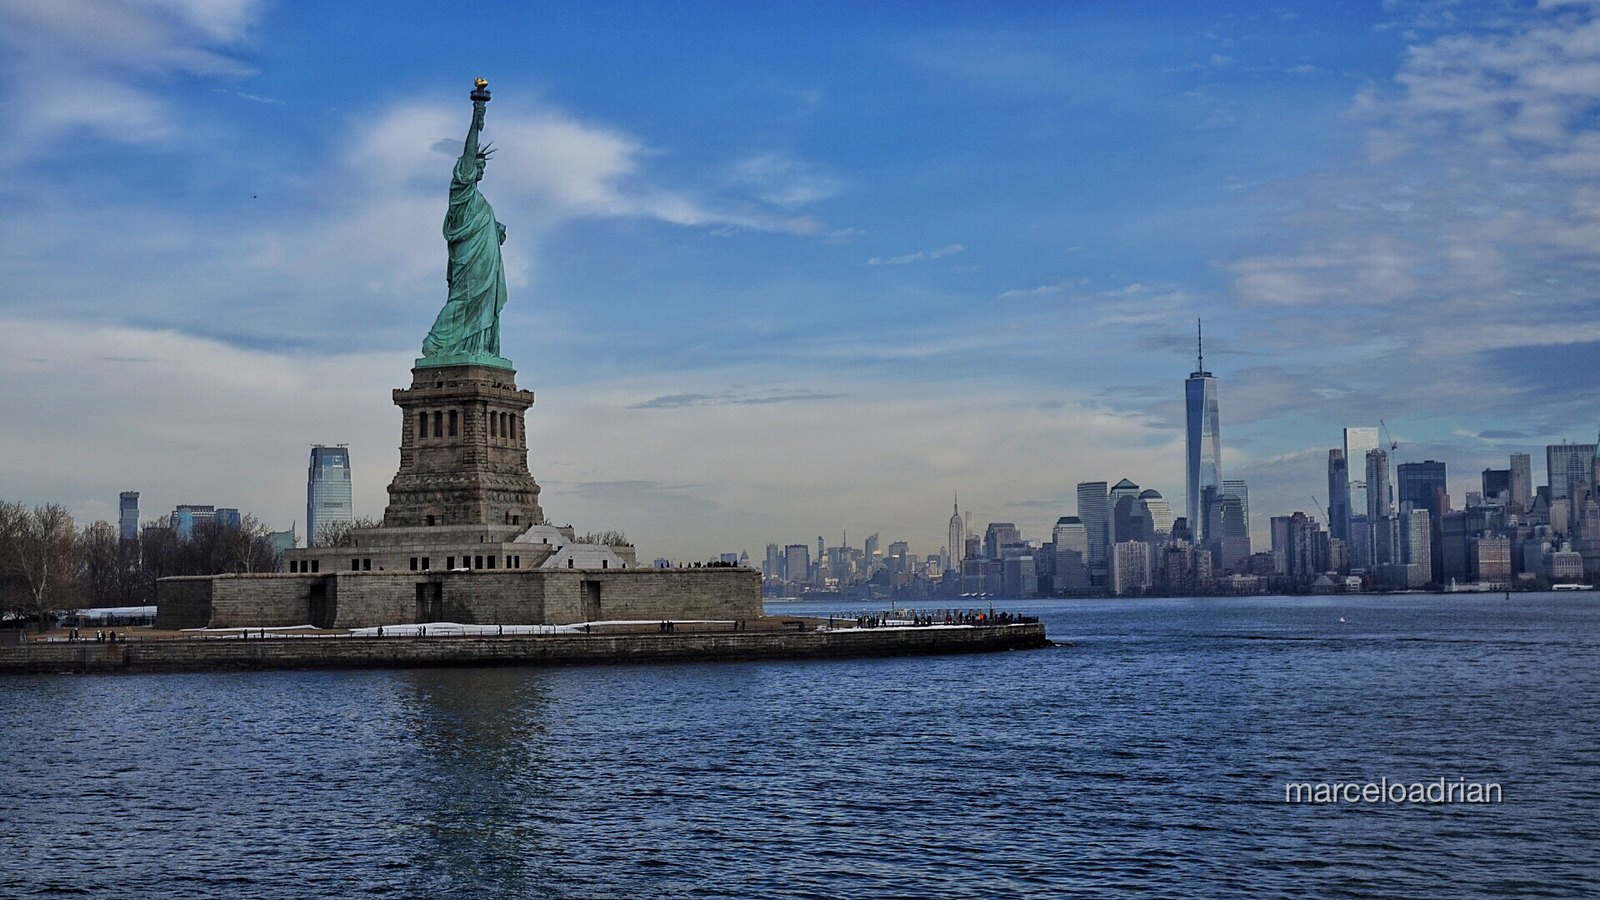 new york one world trade center 1wtc 541m 1776ft 94 fl statue of liberty new york by marcelo on flickr